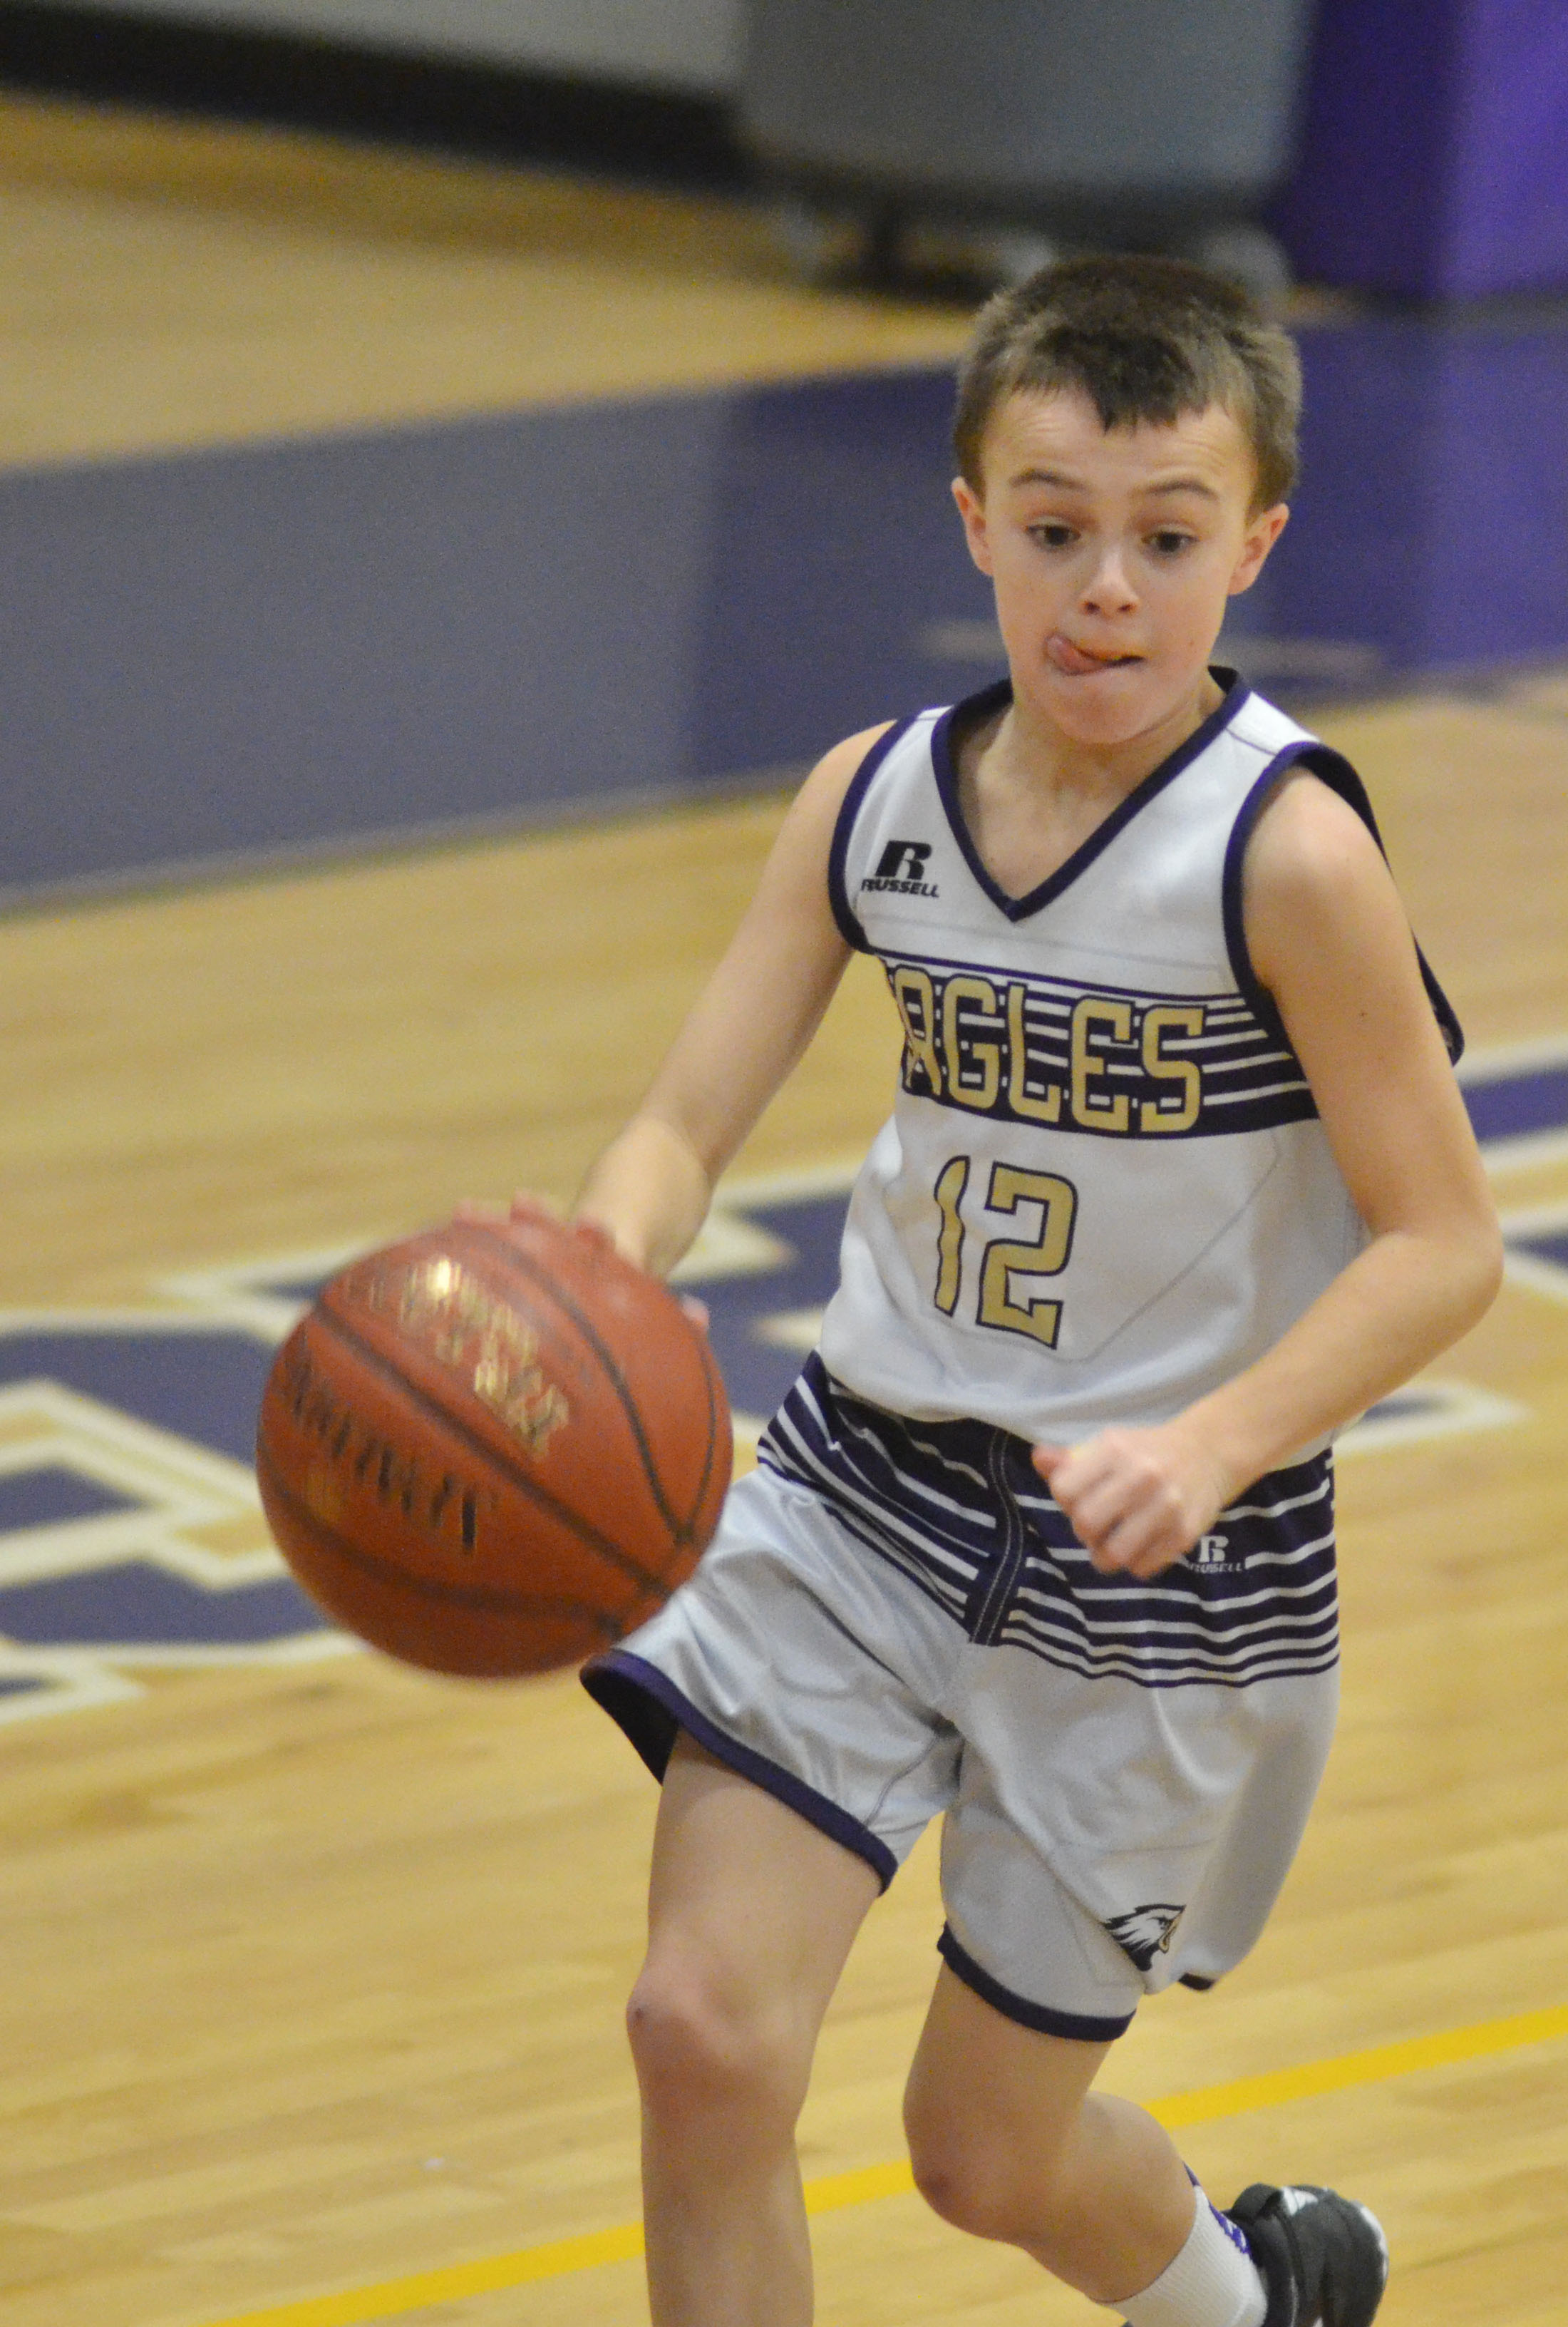 CMS sixth-grader Chase Hord runs to the basket.